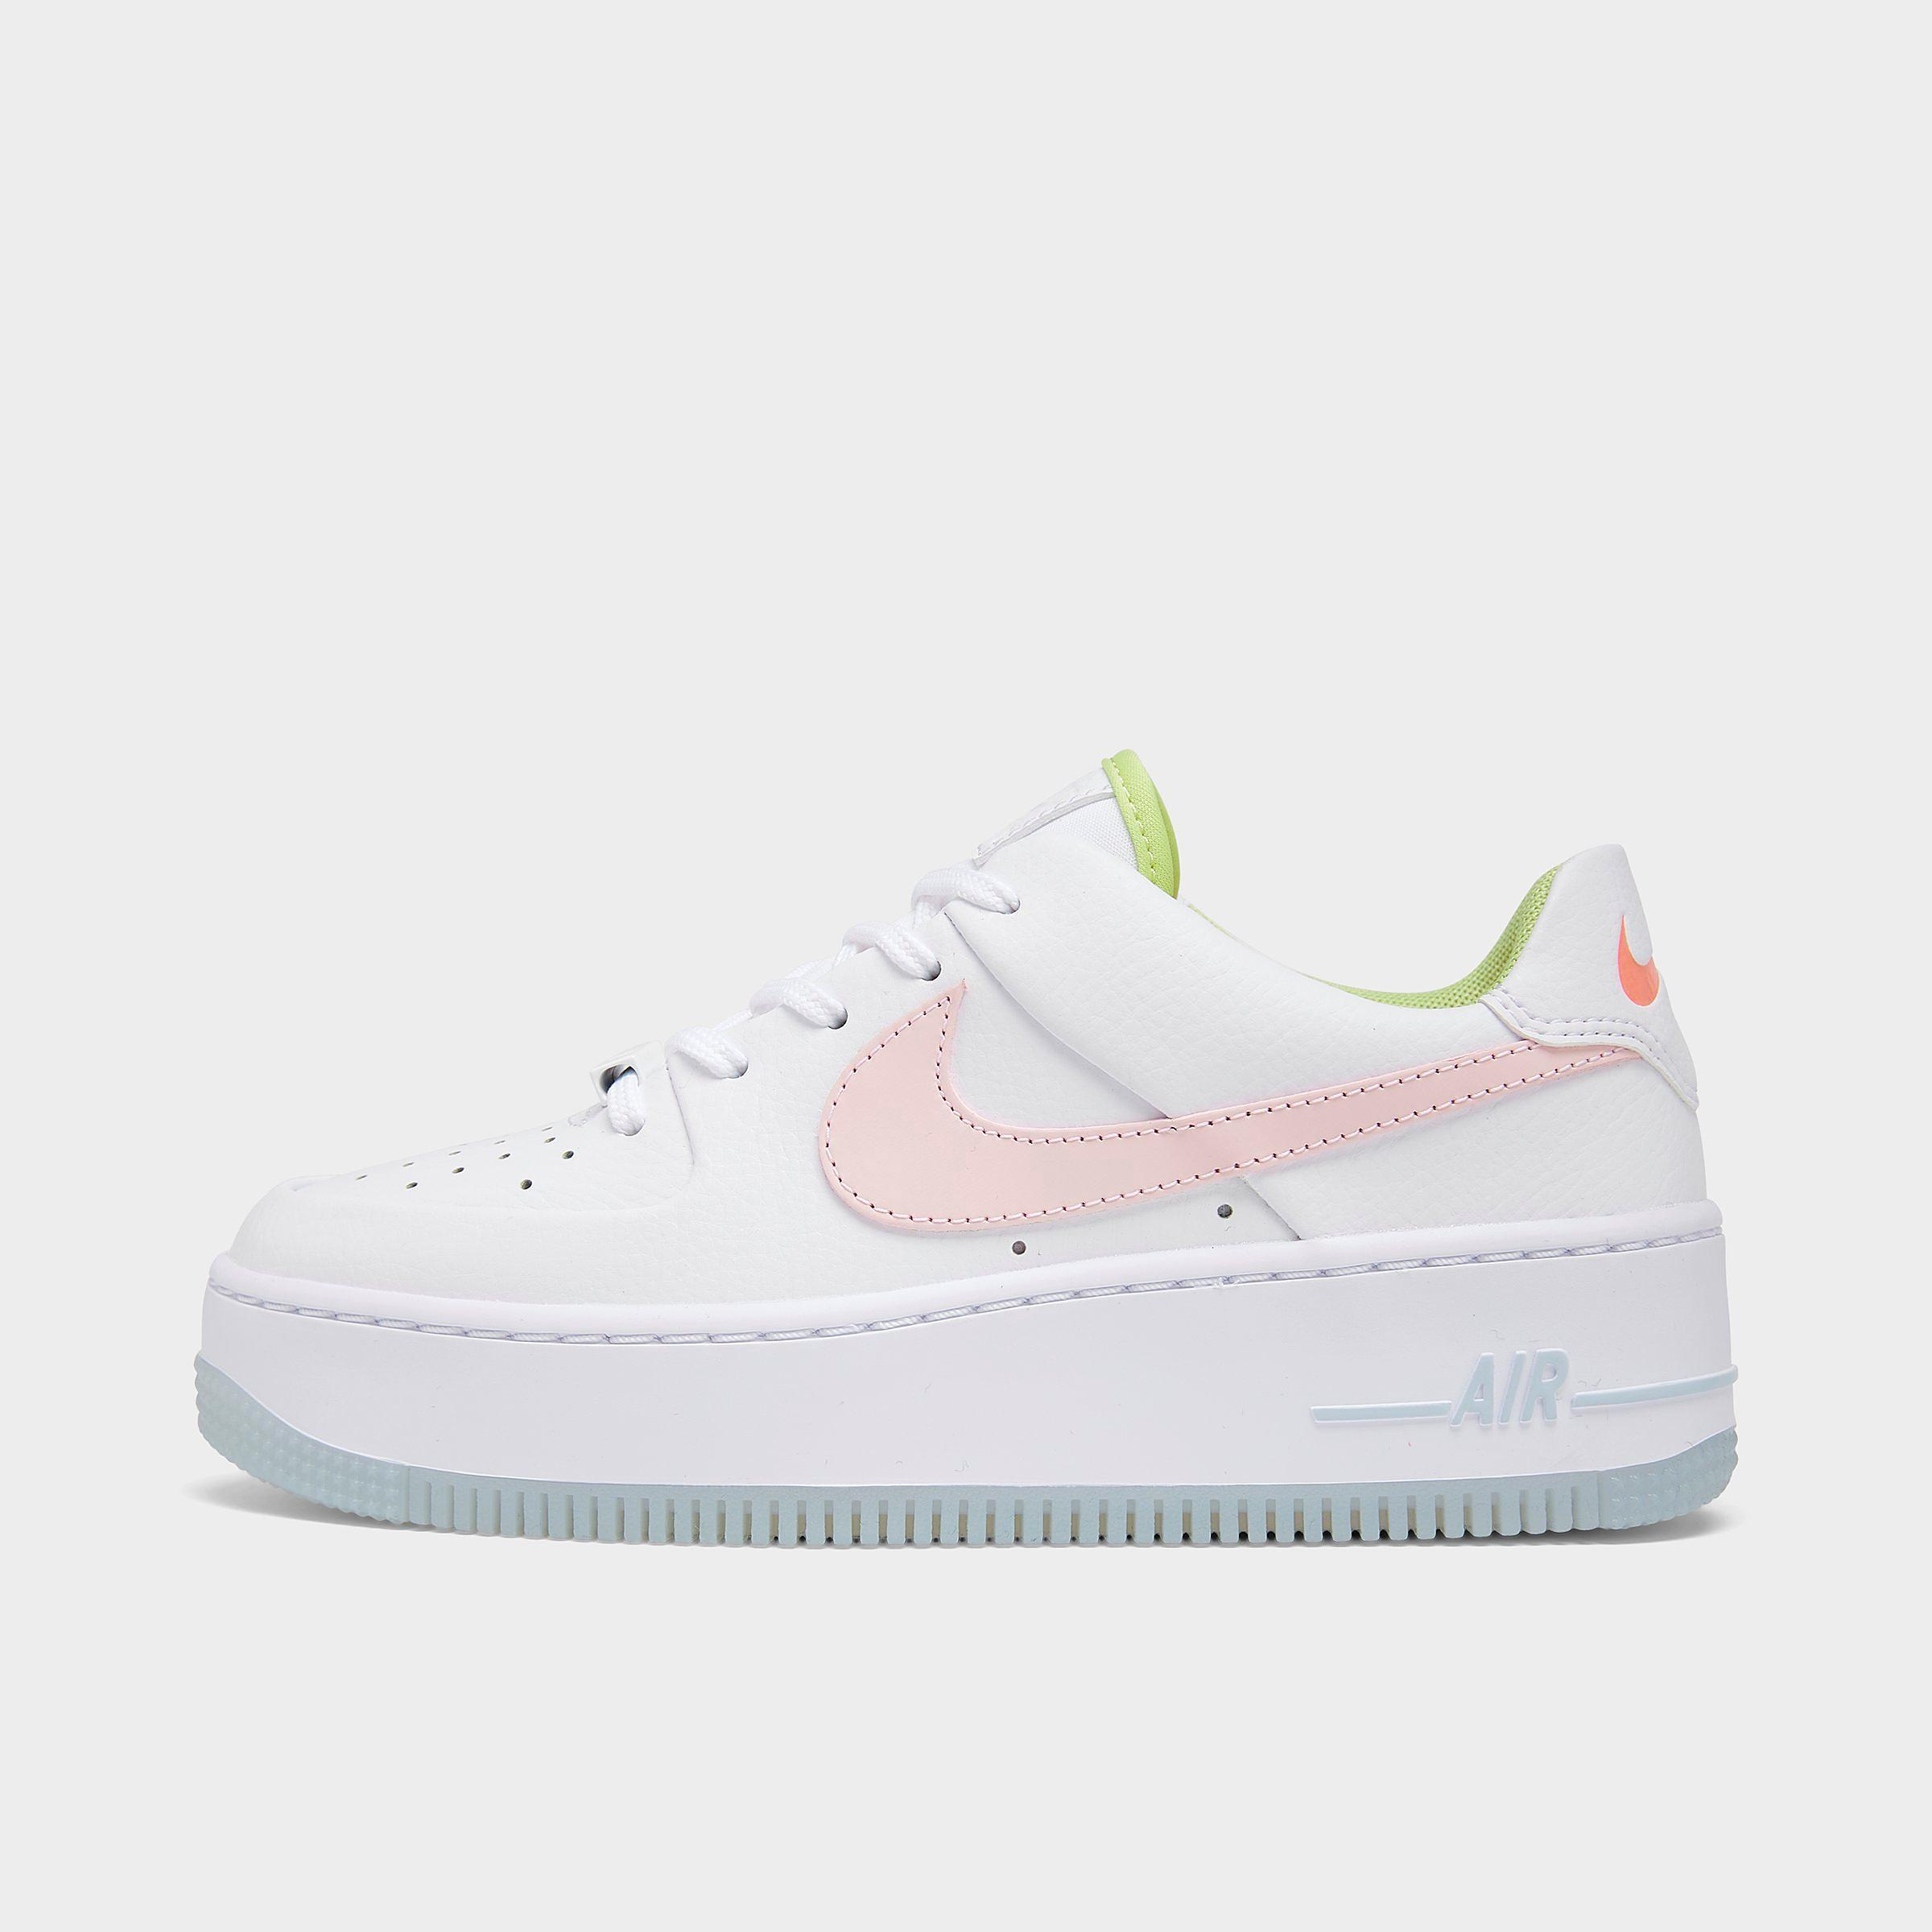 Women's Nike Air Force 1 Sage Low One of One Casual Shoes ...